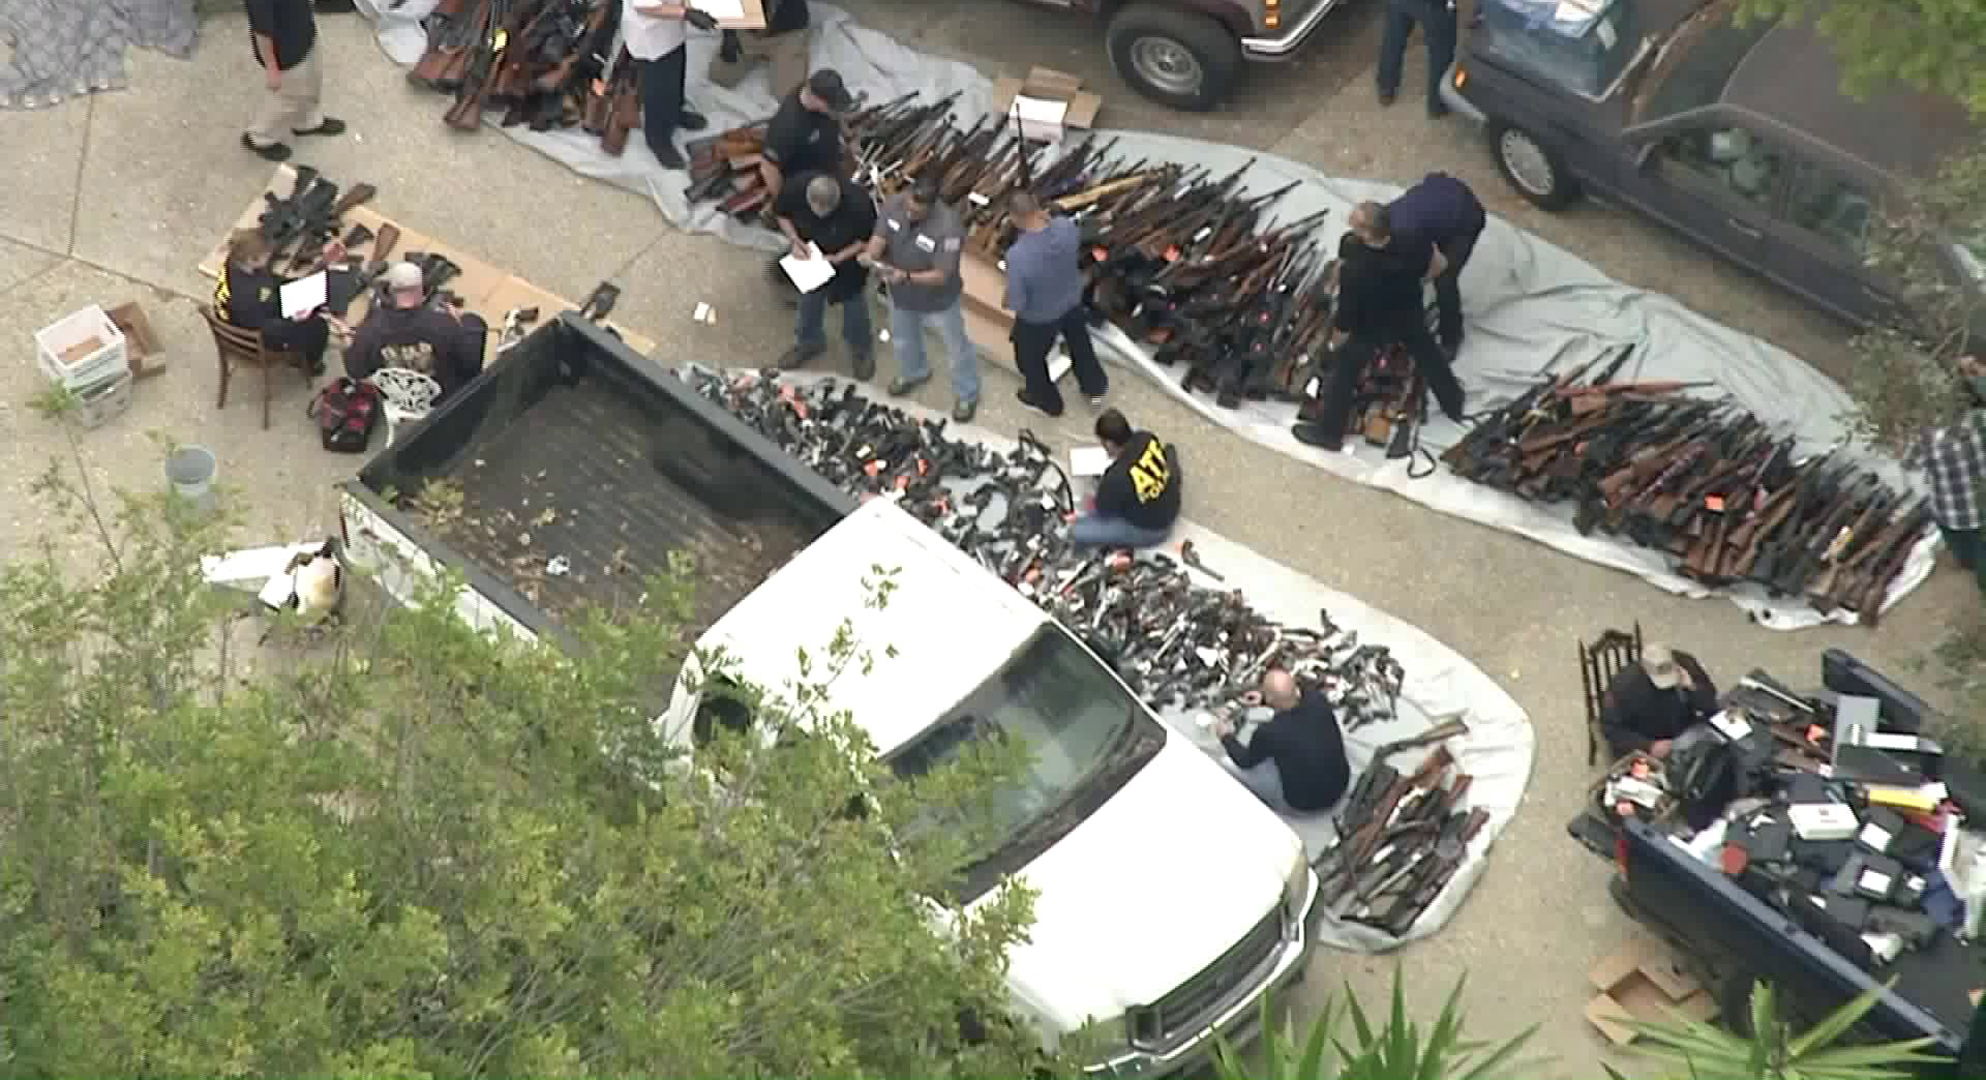 ATF officials investigate after hundreds of guns are found in a Bel-Air home on May 8, 2019. (Credit: KTLA)